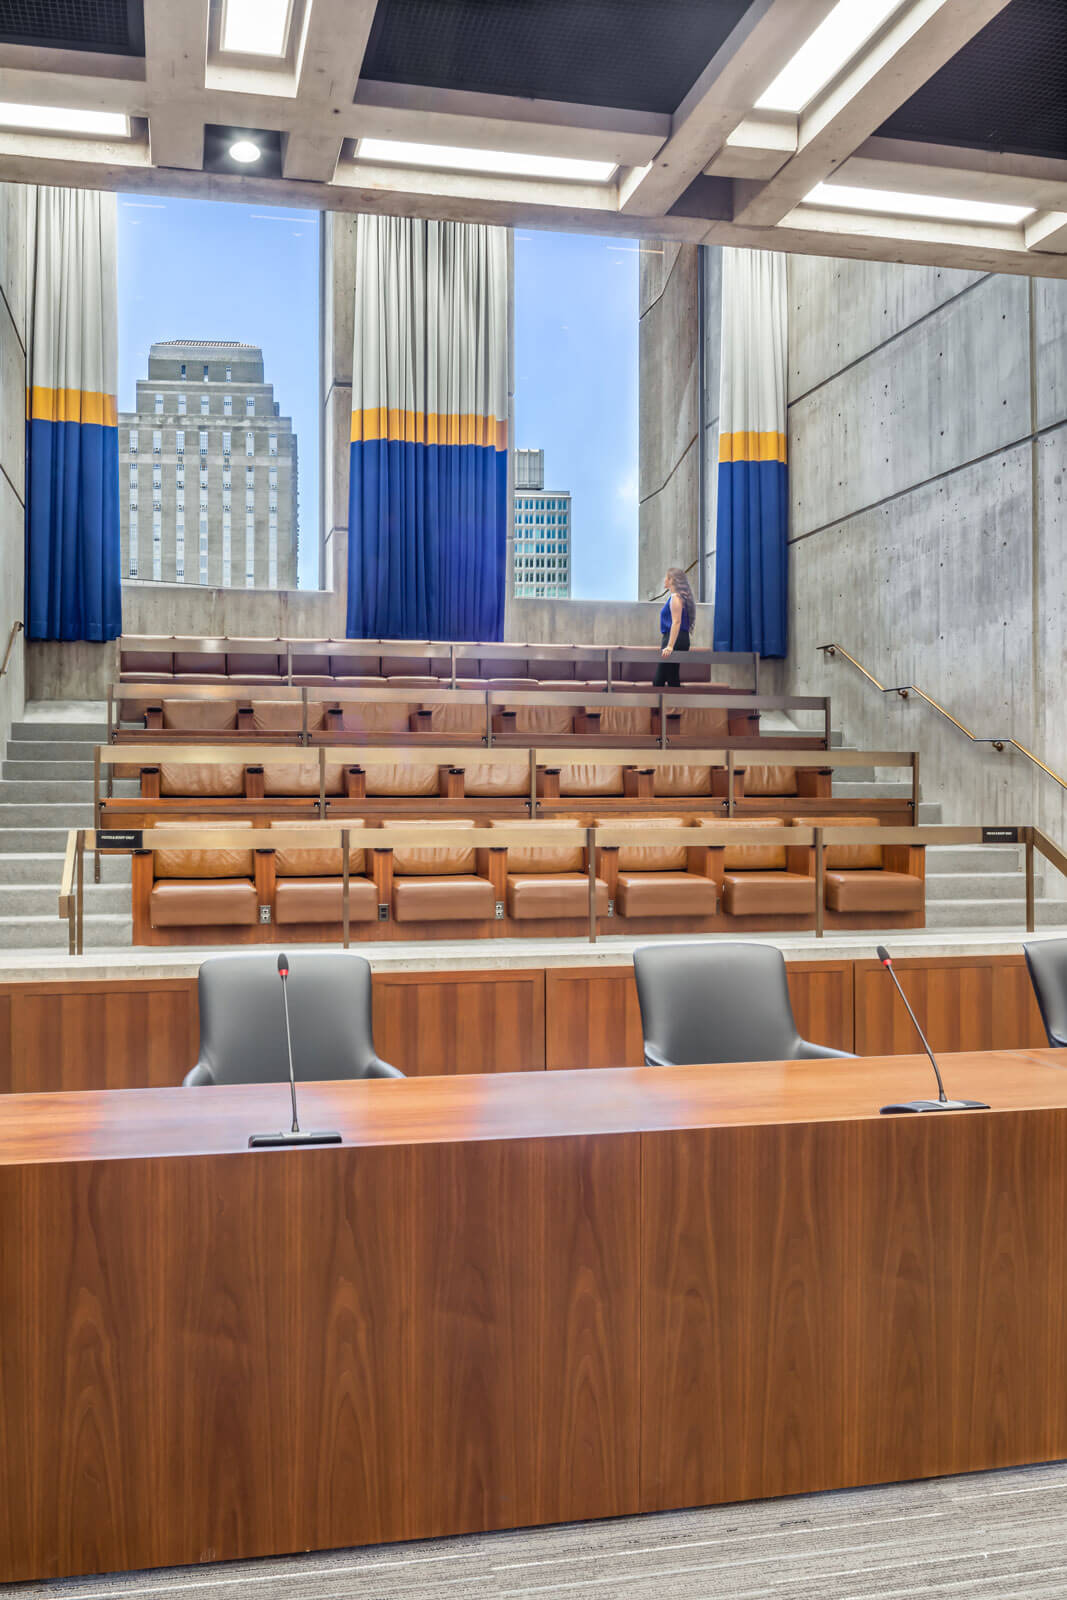 Interior view showing linear desk seating and stadium-step public gallery at the Boston City Hall Council Chambers, renovated by Finegold Alexander Architects